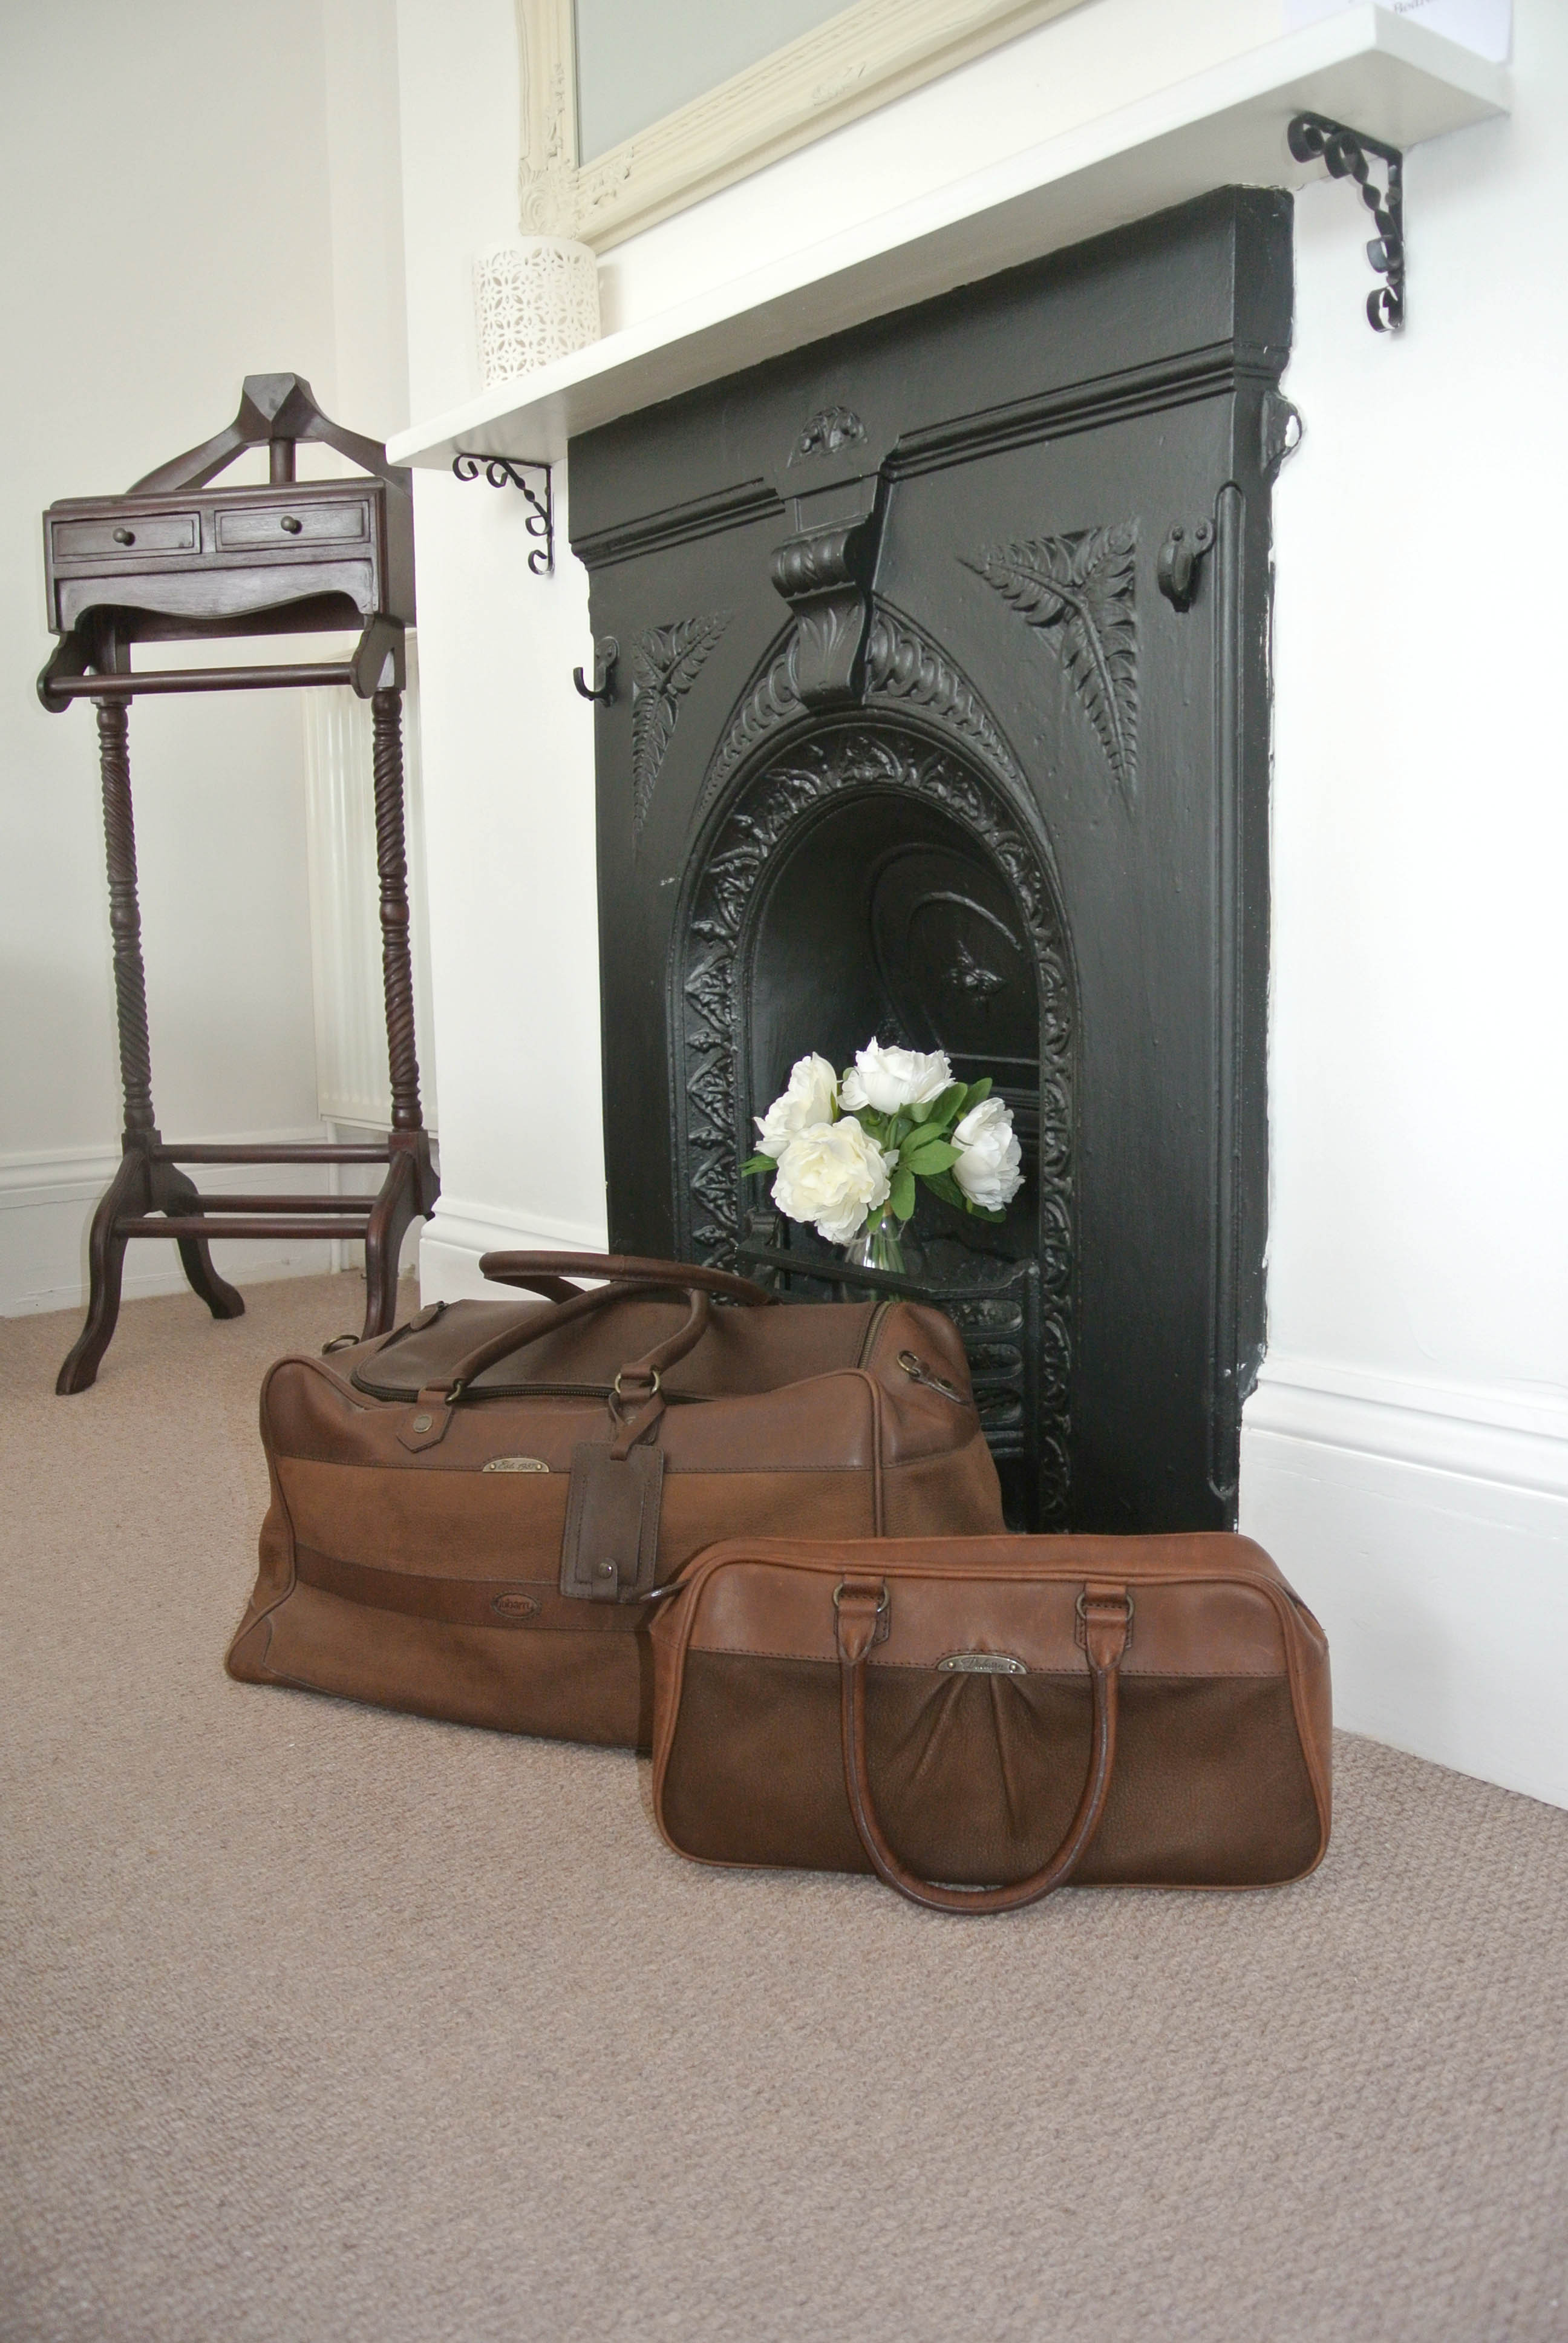 Dubarry luggage in Albacore Room